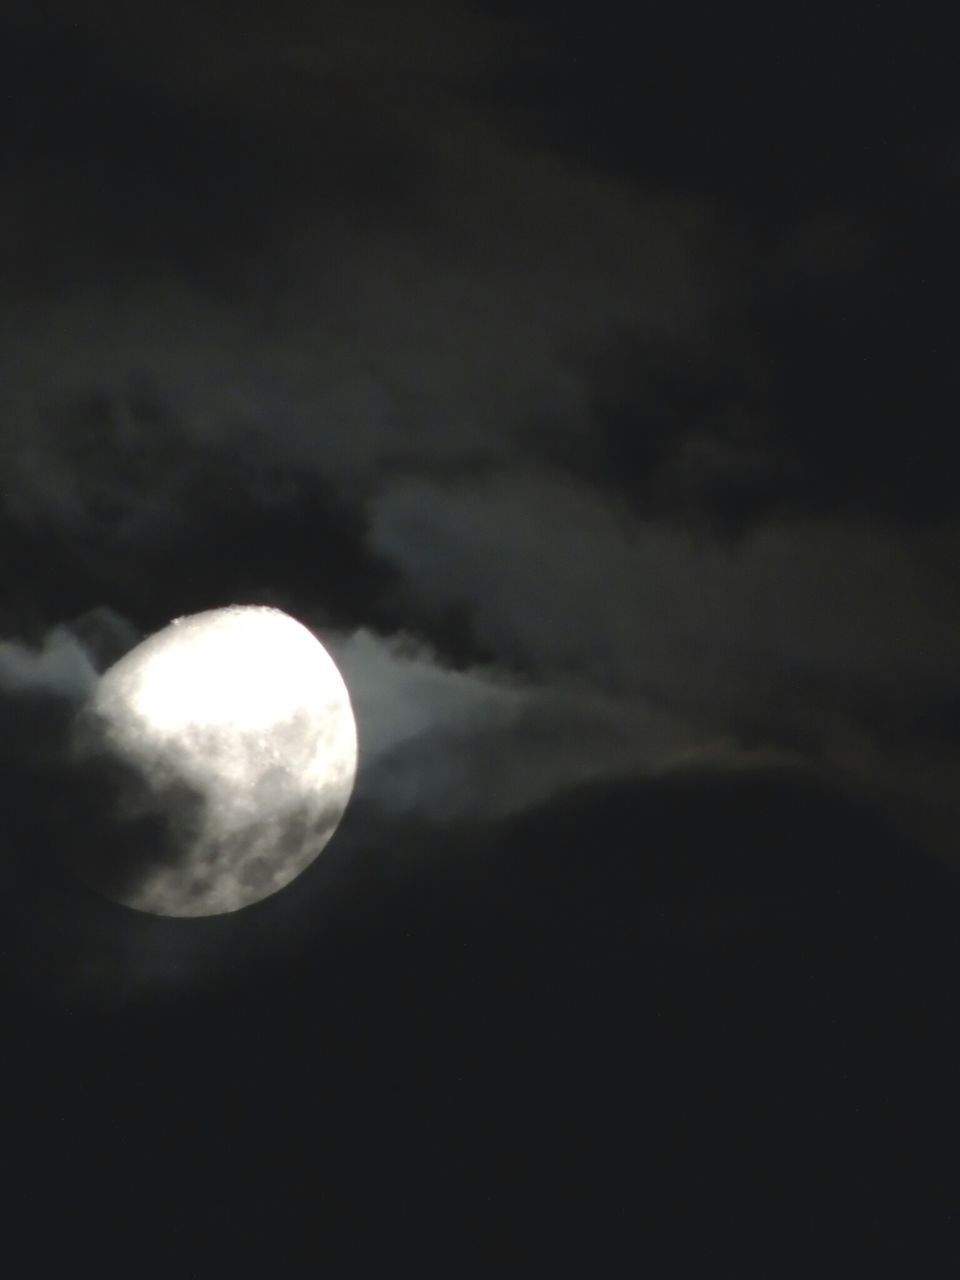 moon, beauty in nature, nature, low angle view, sky, scenics, night, tranquility, astronomy, tranquil scene, planetary moon, sky only, cloud - sky, dark, no people, moon surface, outdoors, half moon, moonlight, space exploration, crescent, space